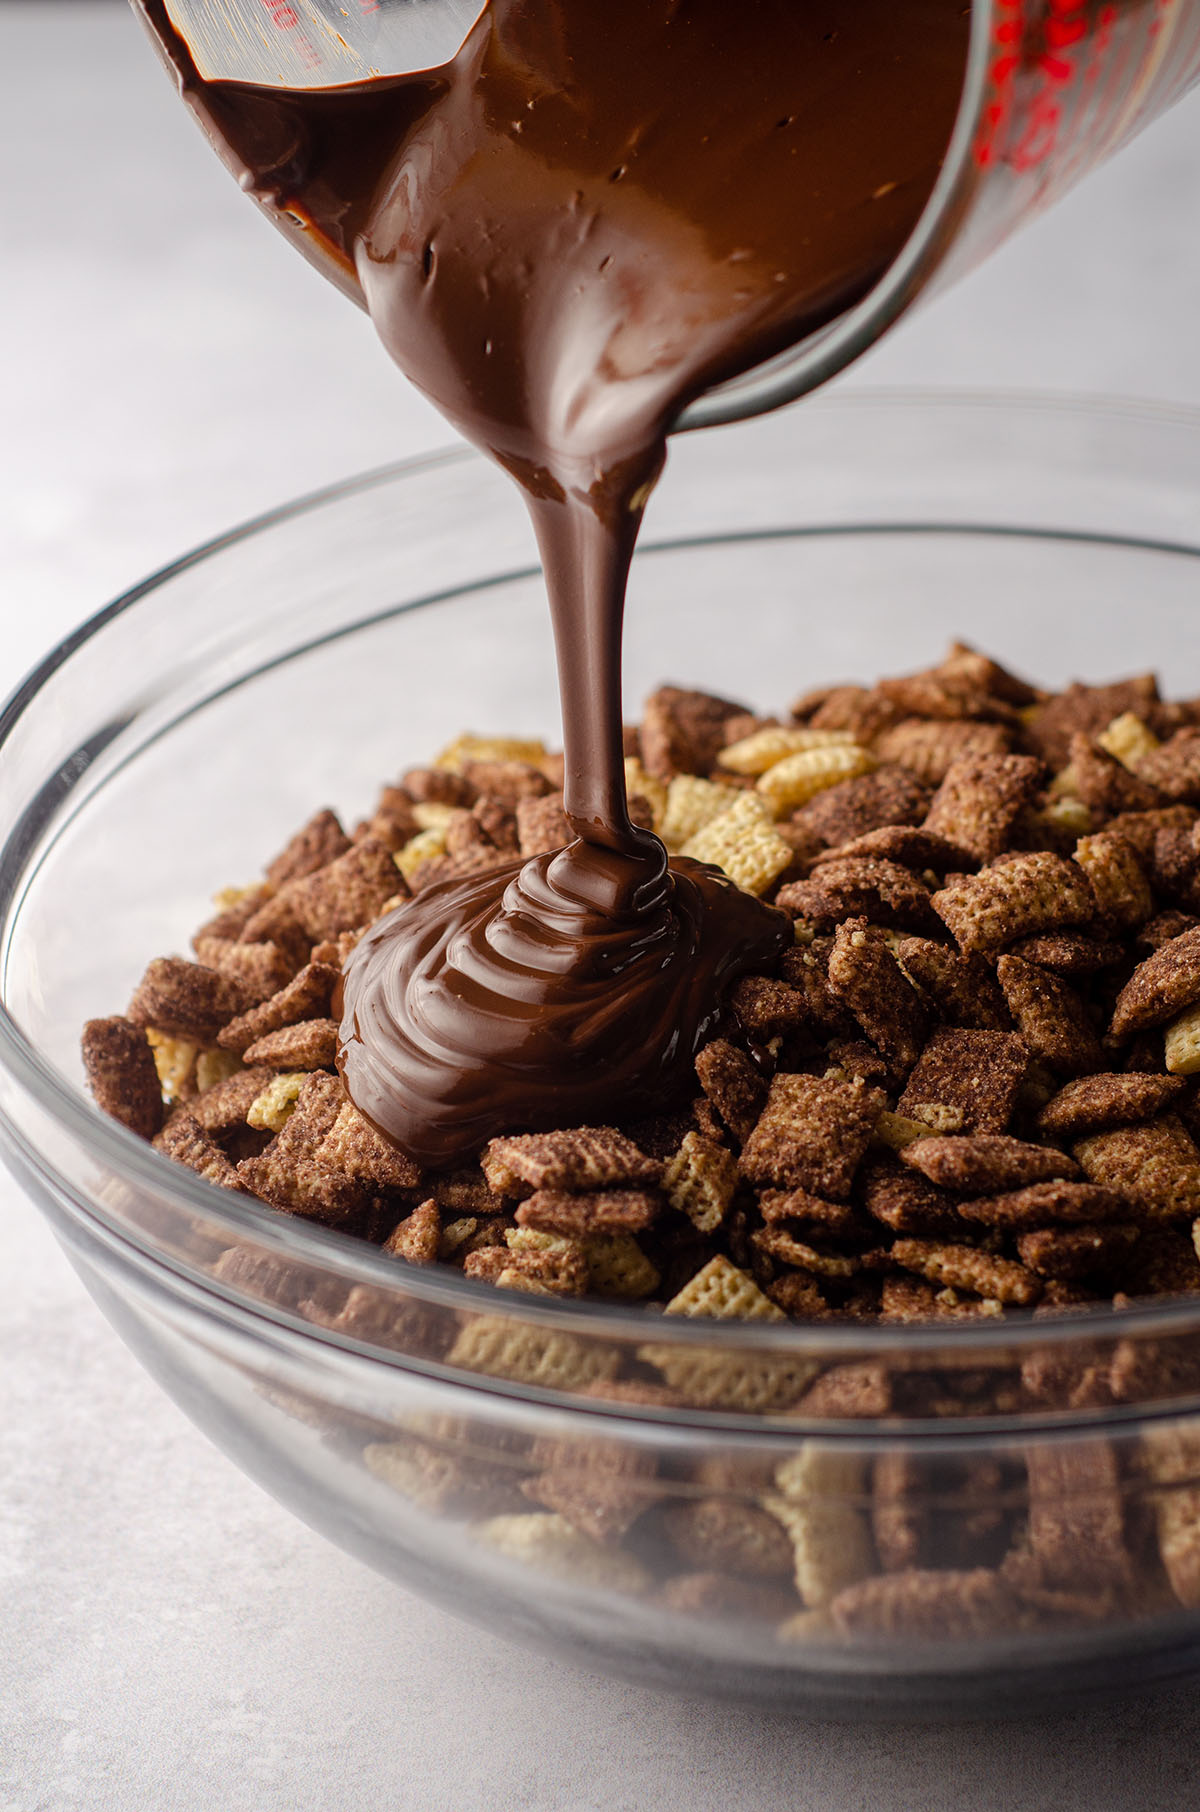 melted chocolate being poured onto chocolate chex cereal to make brownie batter puppy chow